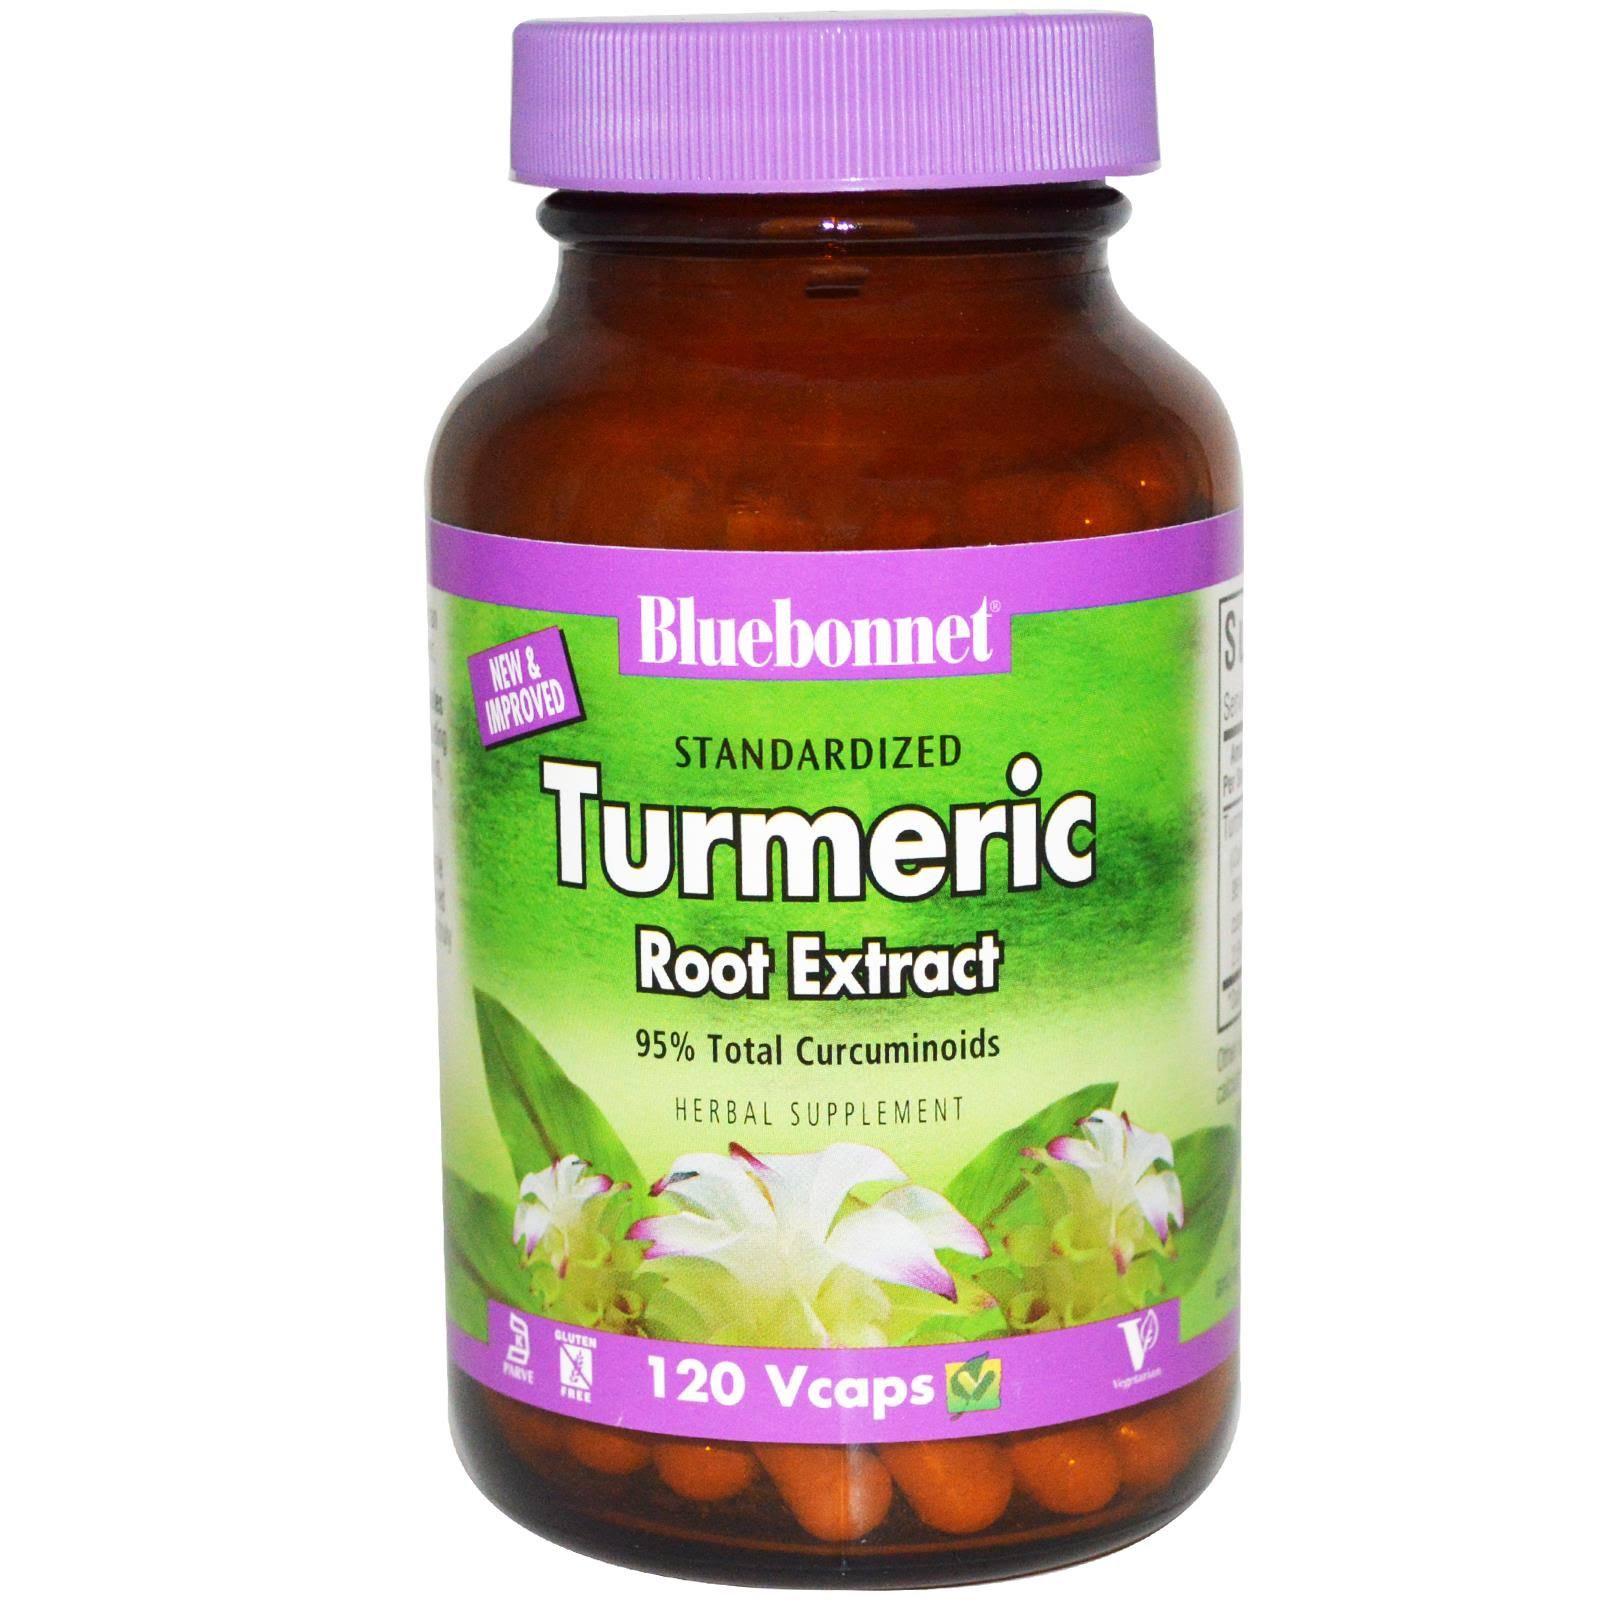 BlueBonnet Turmeric Root Extract Supplement - 120 Vegetarian Capsules